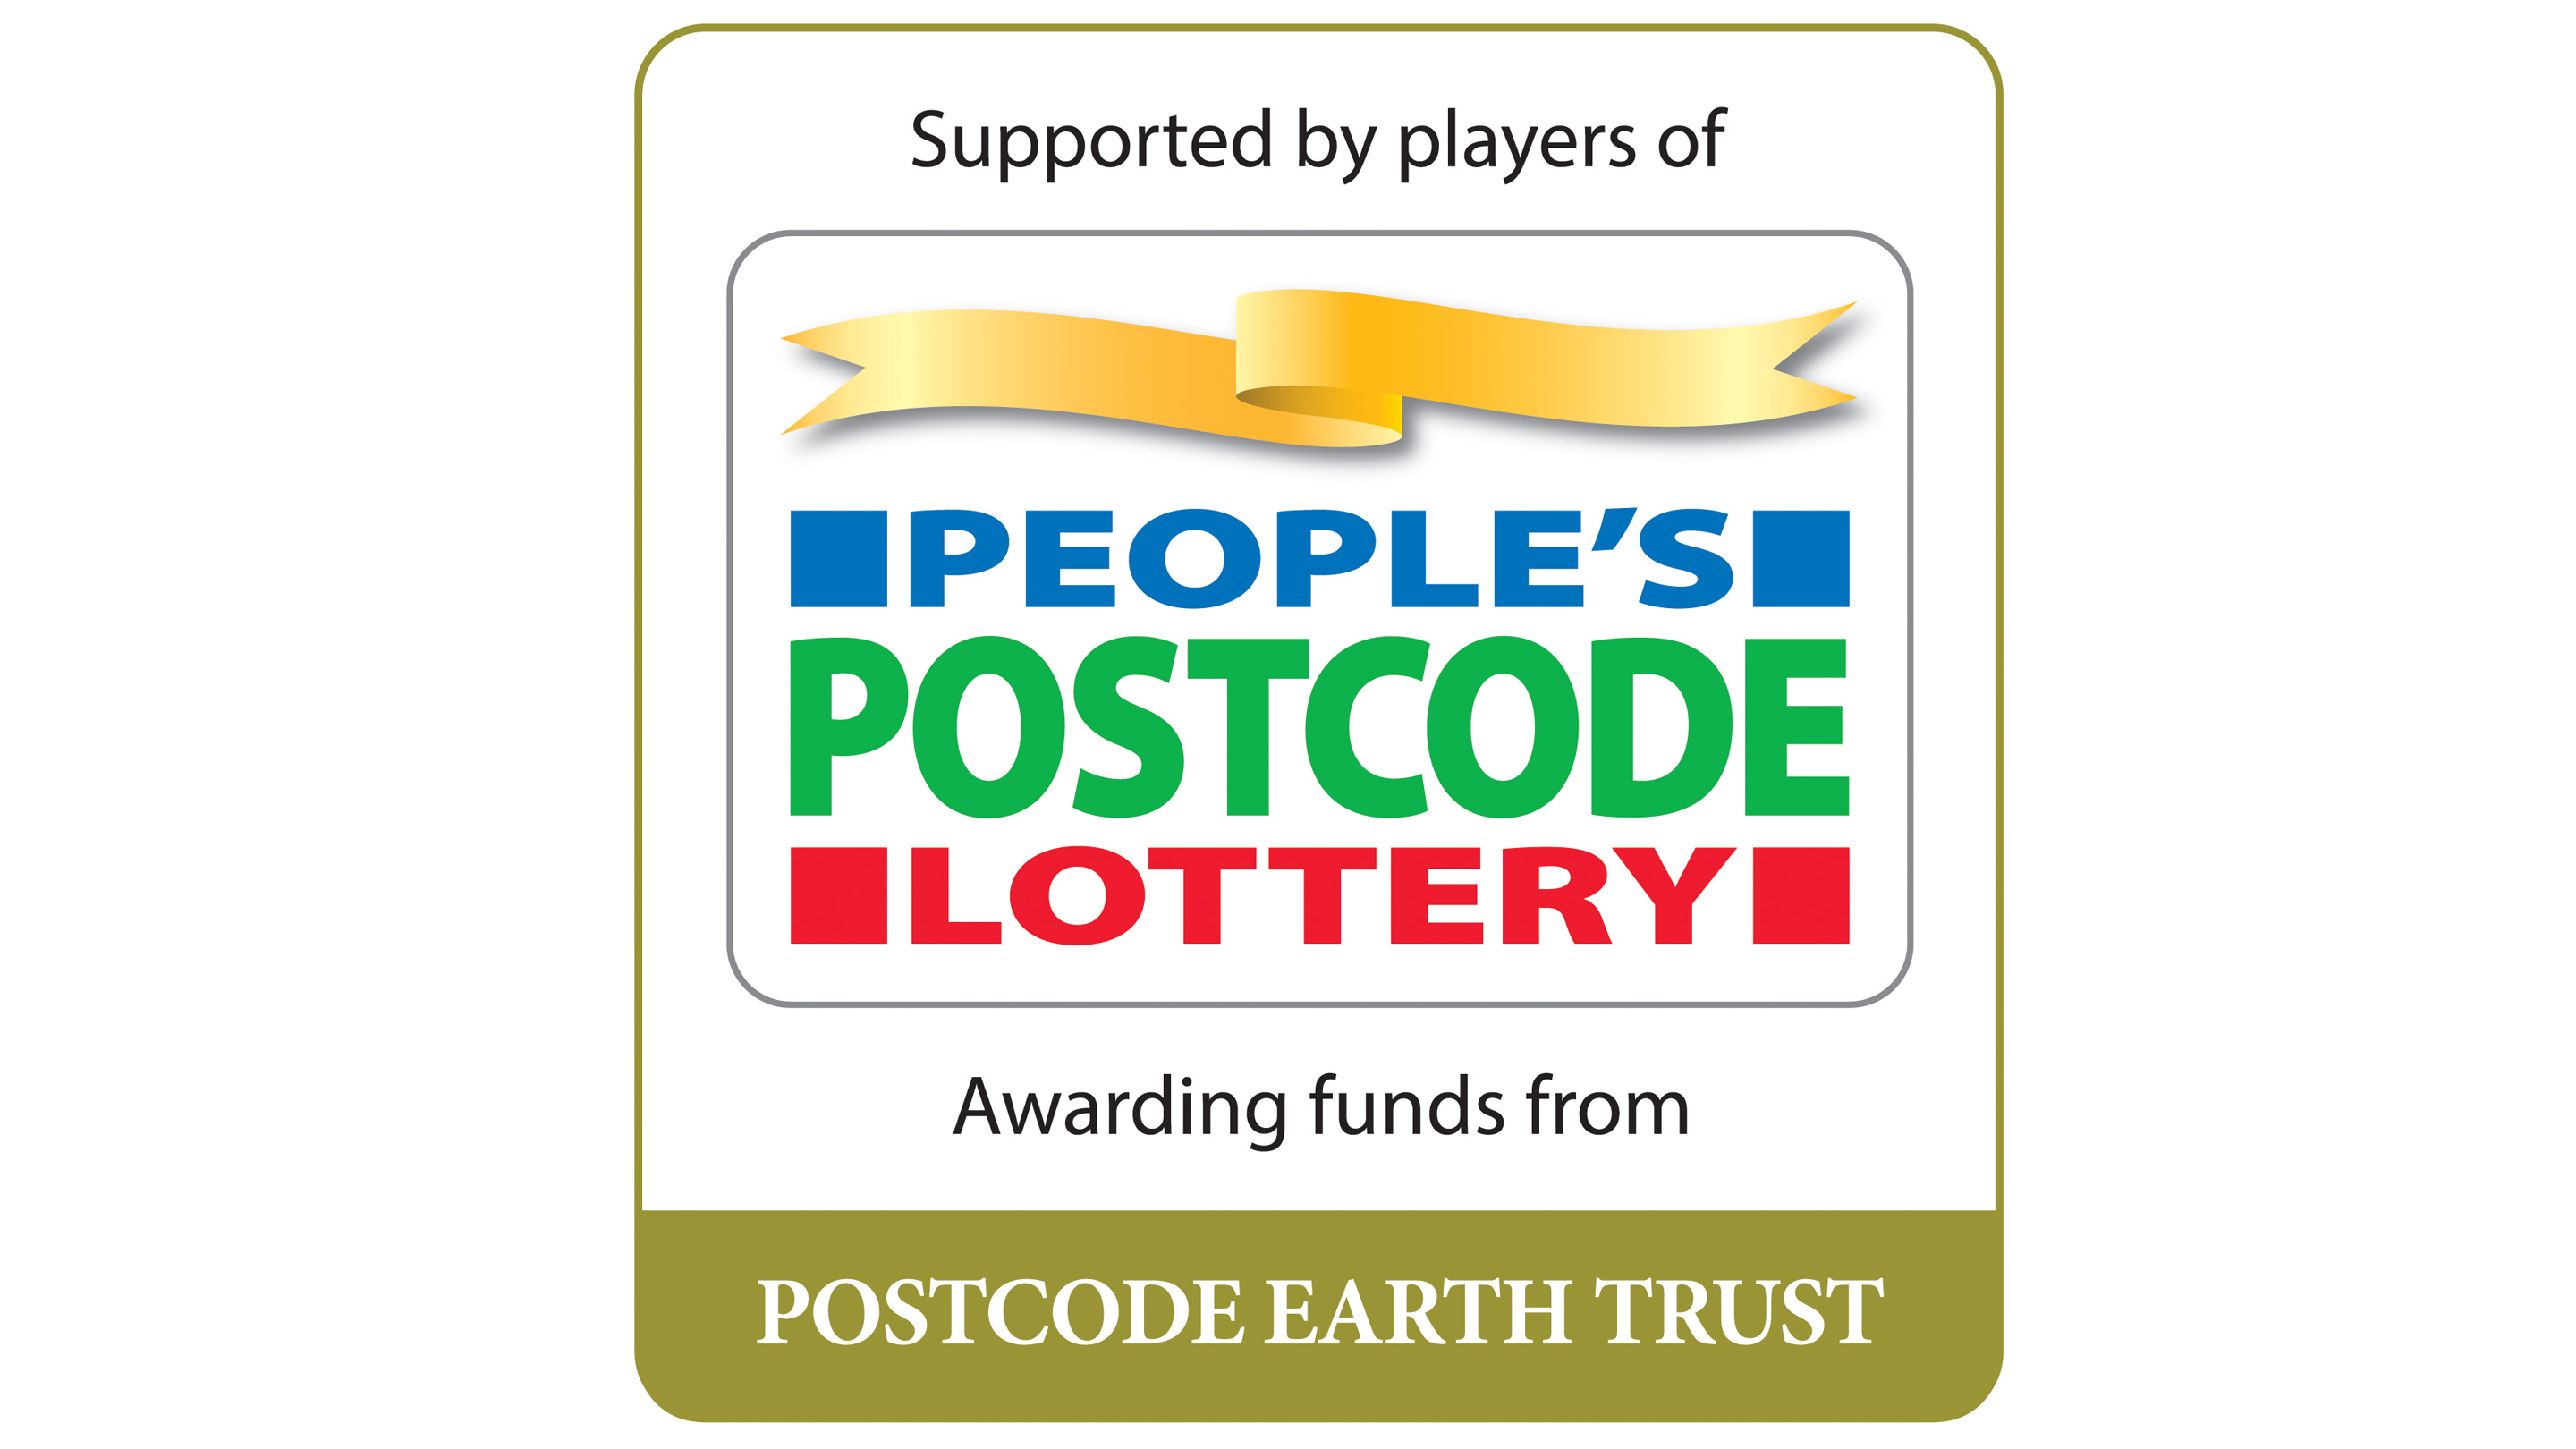 Image showing logo for People's Postcode Lottery.